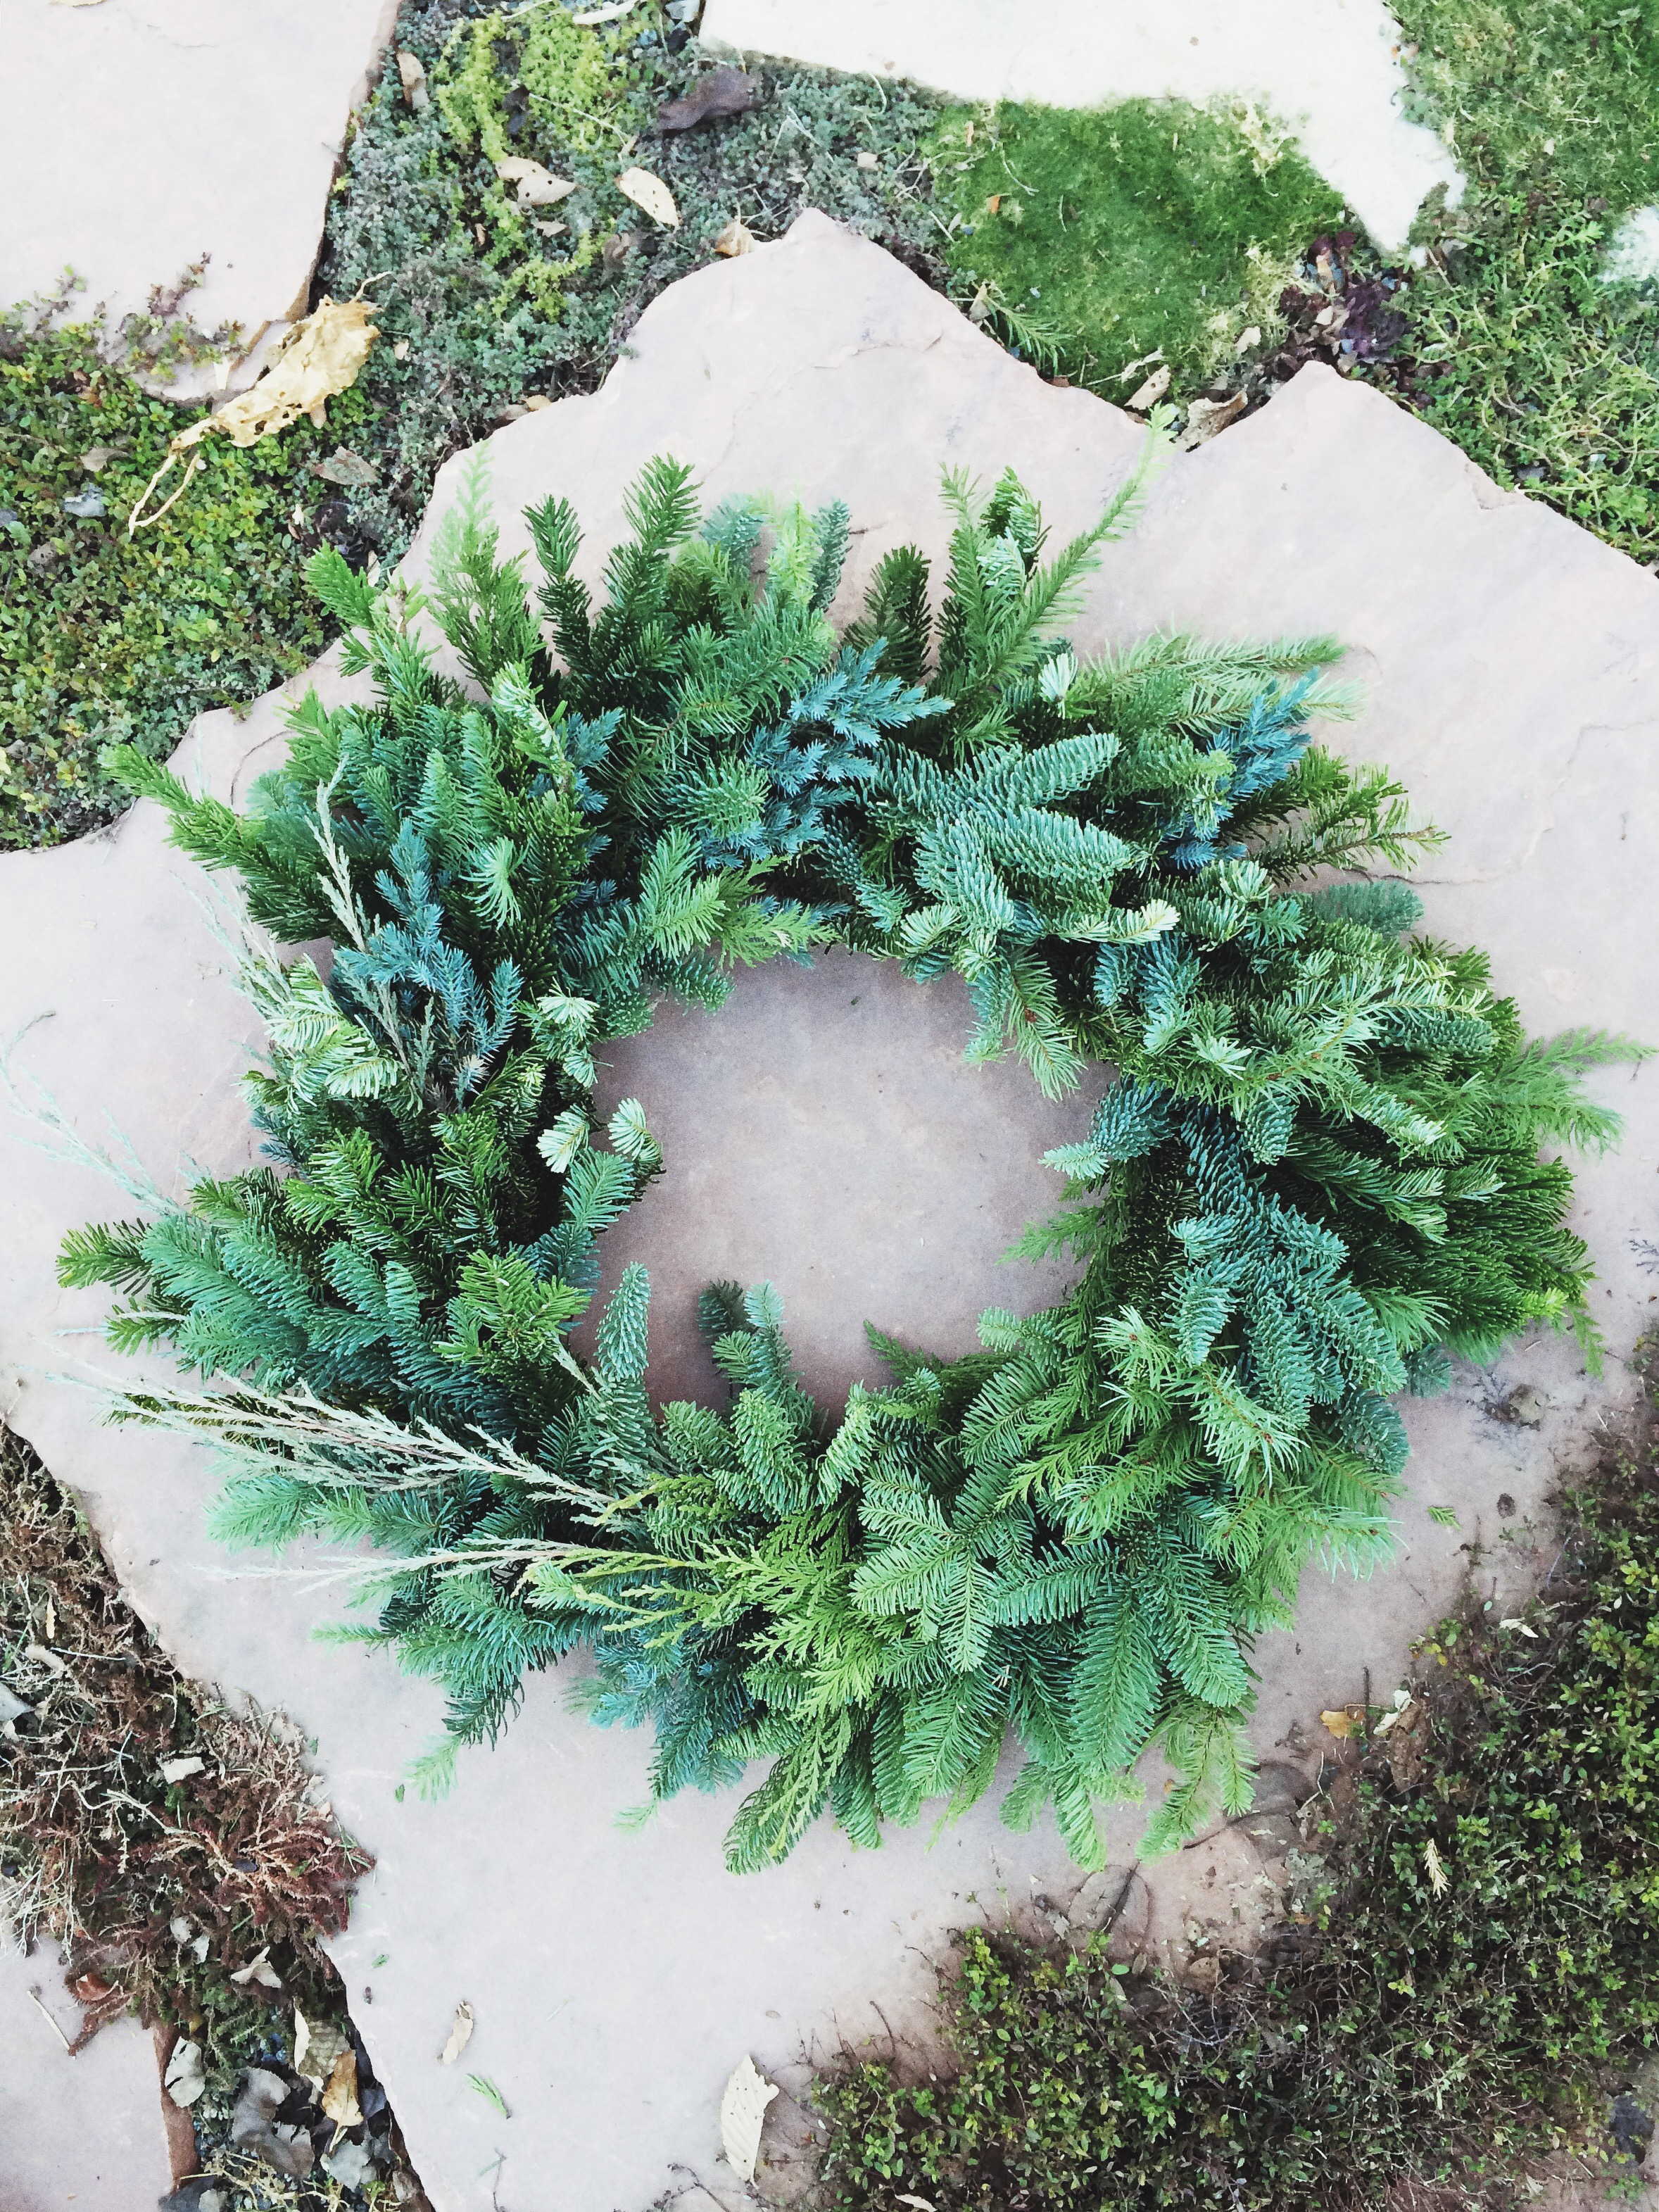 my finished DIY Christmas pine wreath